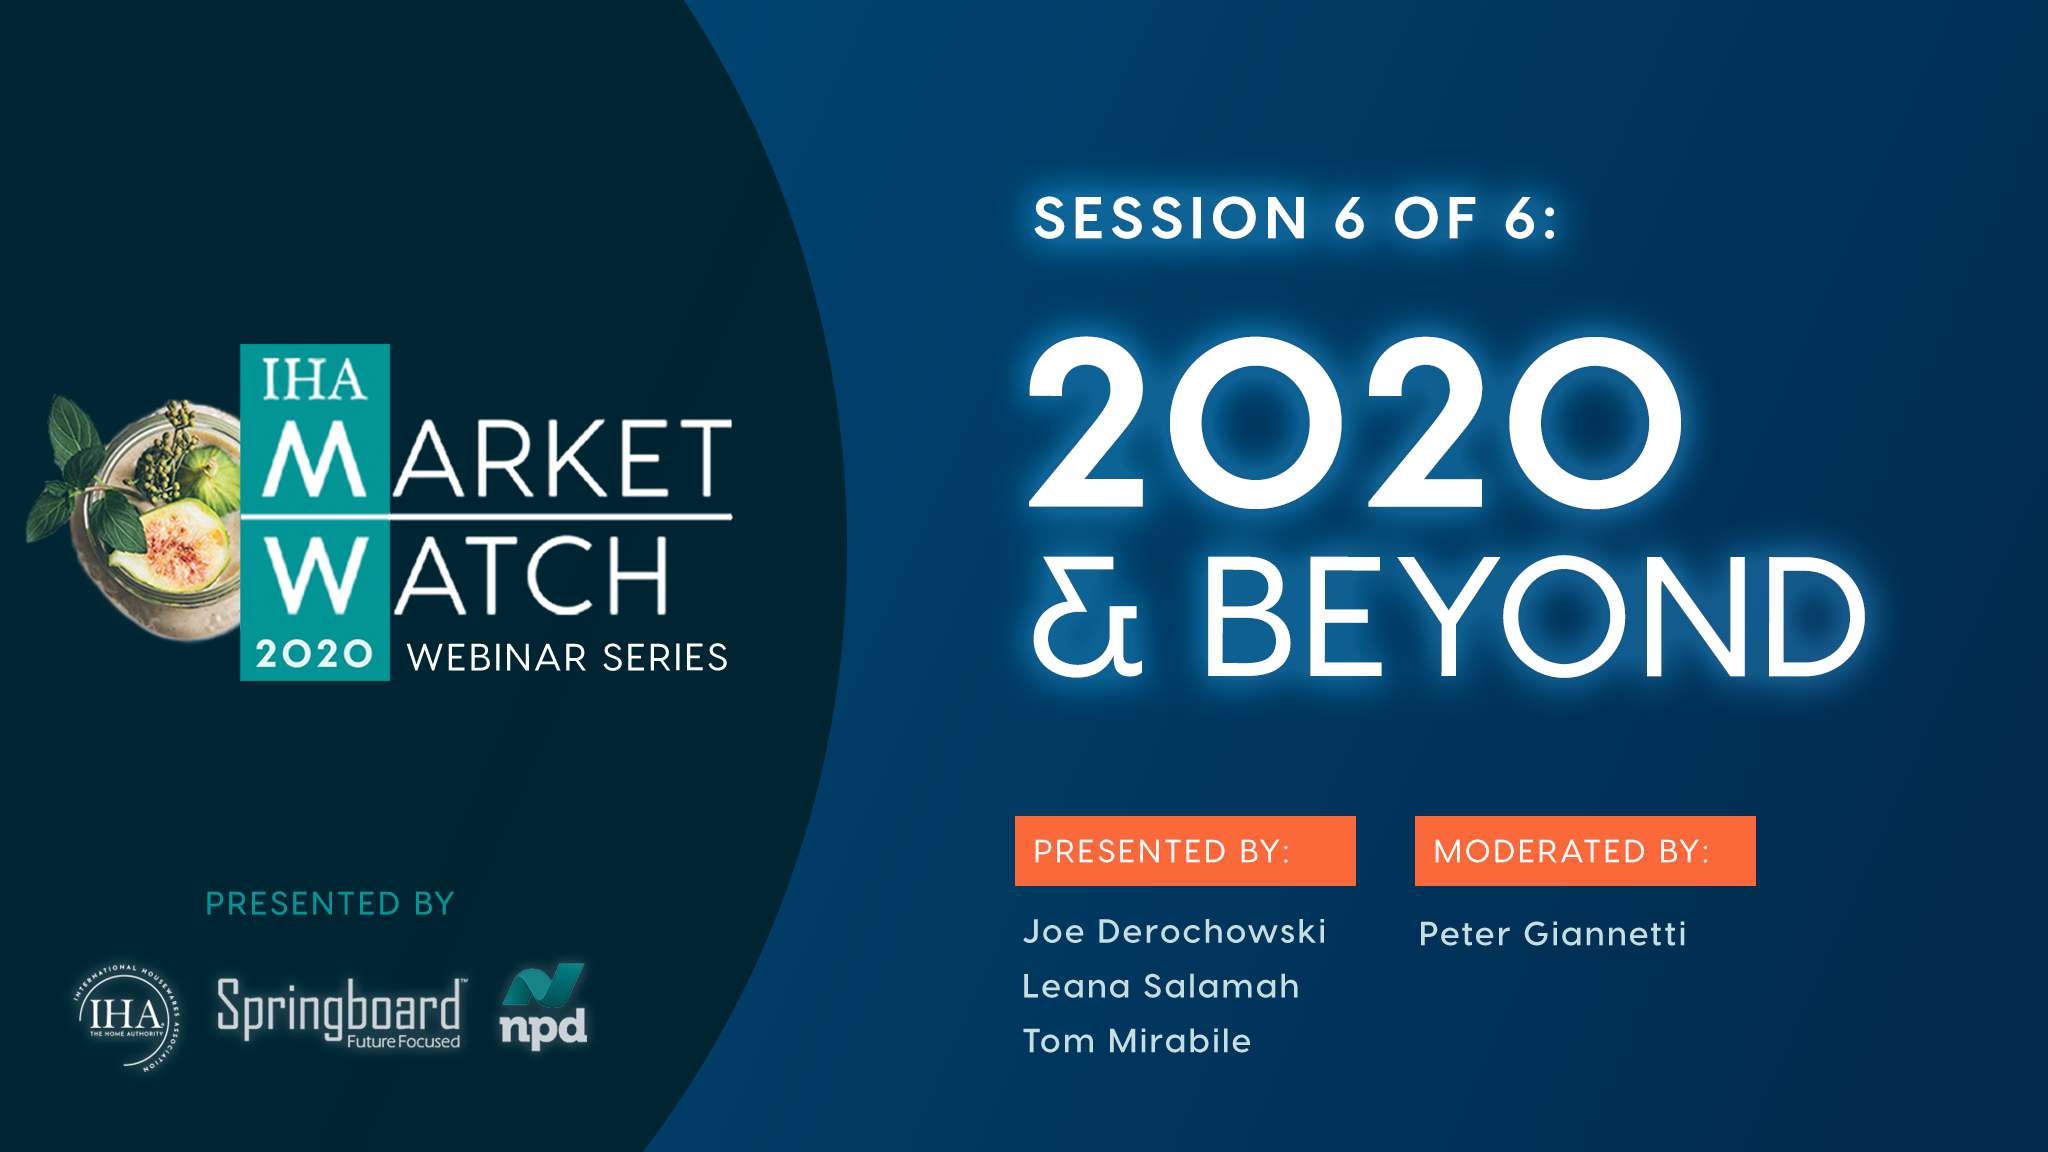 IHA Market Watch - Session 6 - 2020 and Beyond